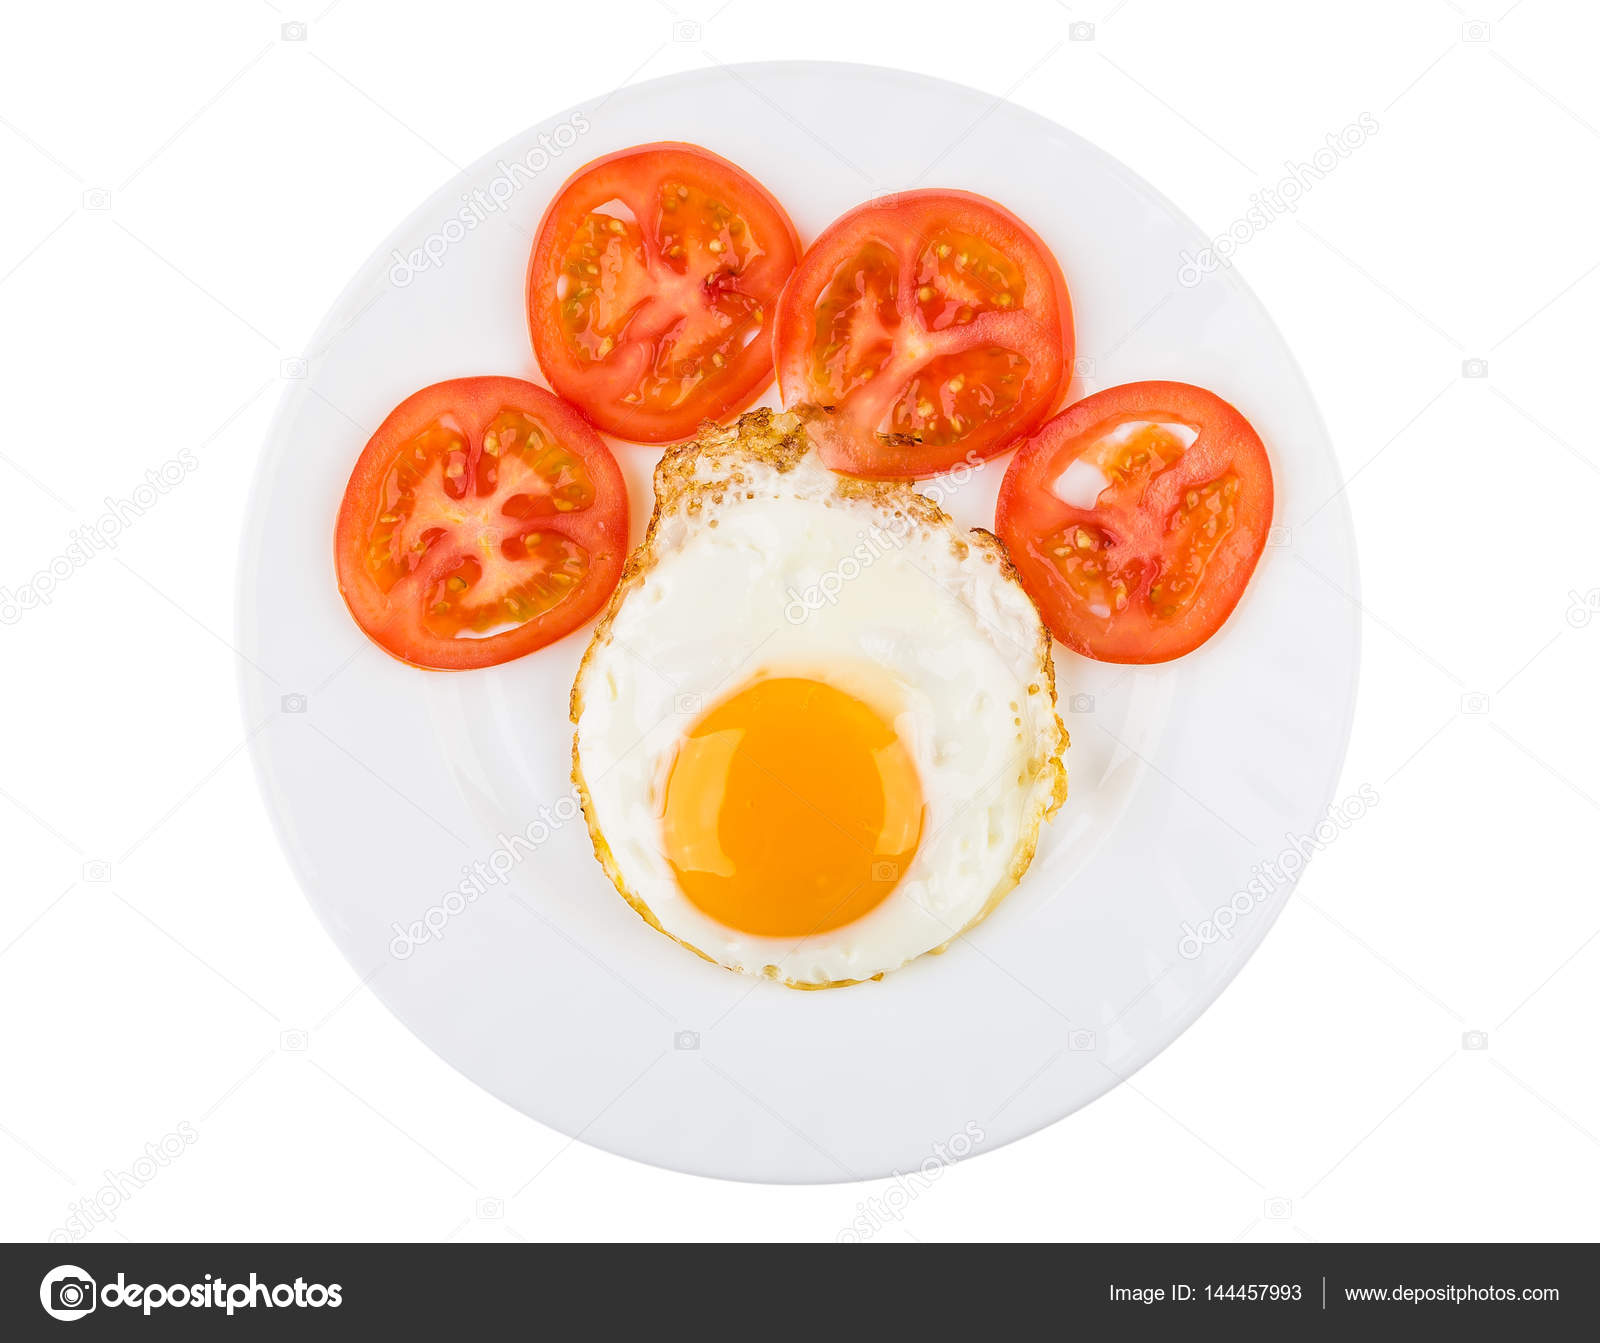 depositphotos_144457993-stock-photo-fried-eggs-with-slices-of.jpg